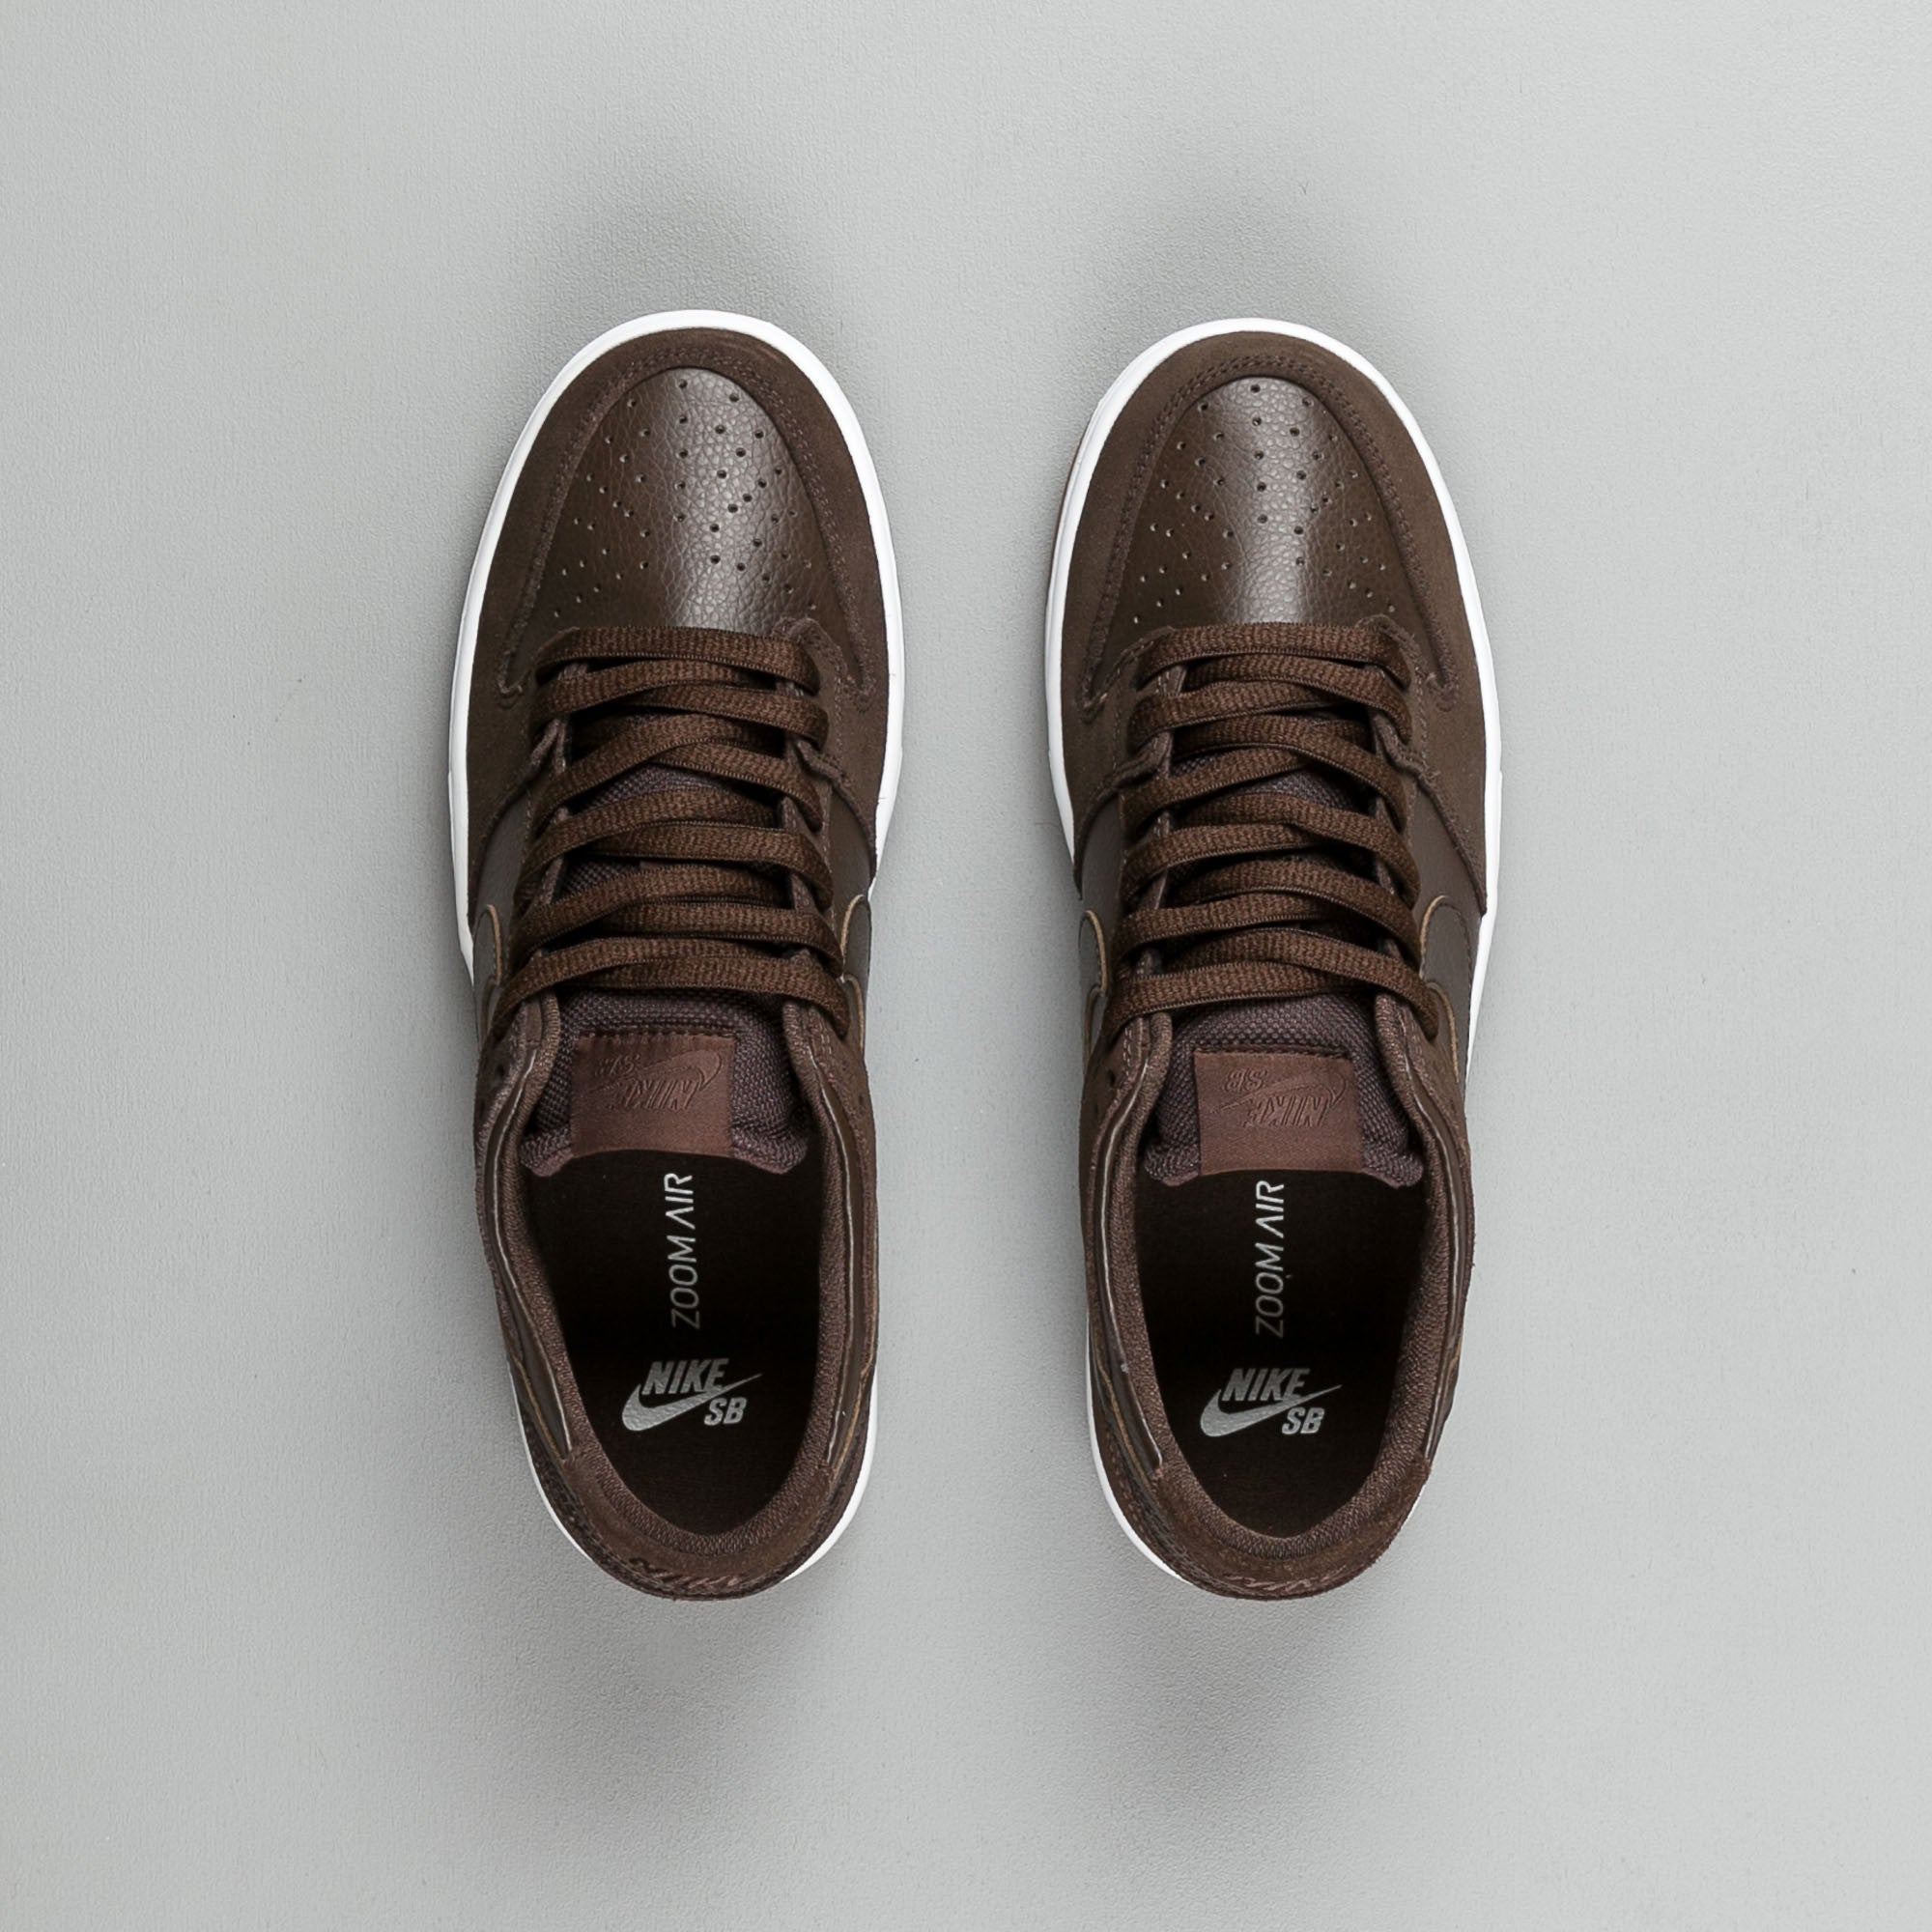 Nike SB Dunk Low Pro Ishod Wair Shoes - Baroque Brown / Baroque Brown - White